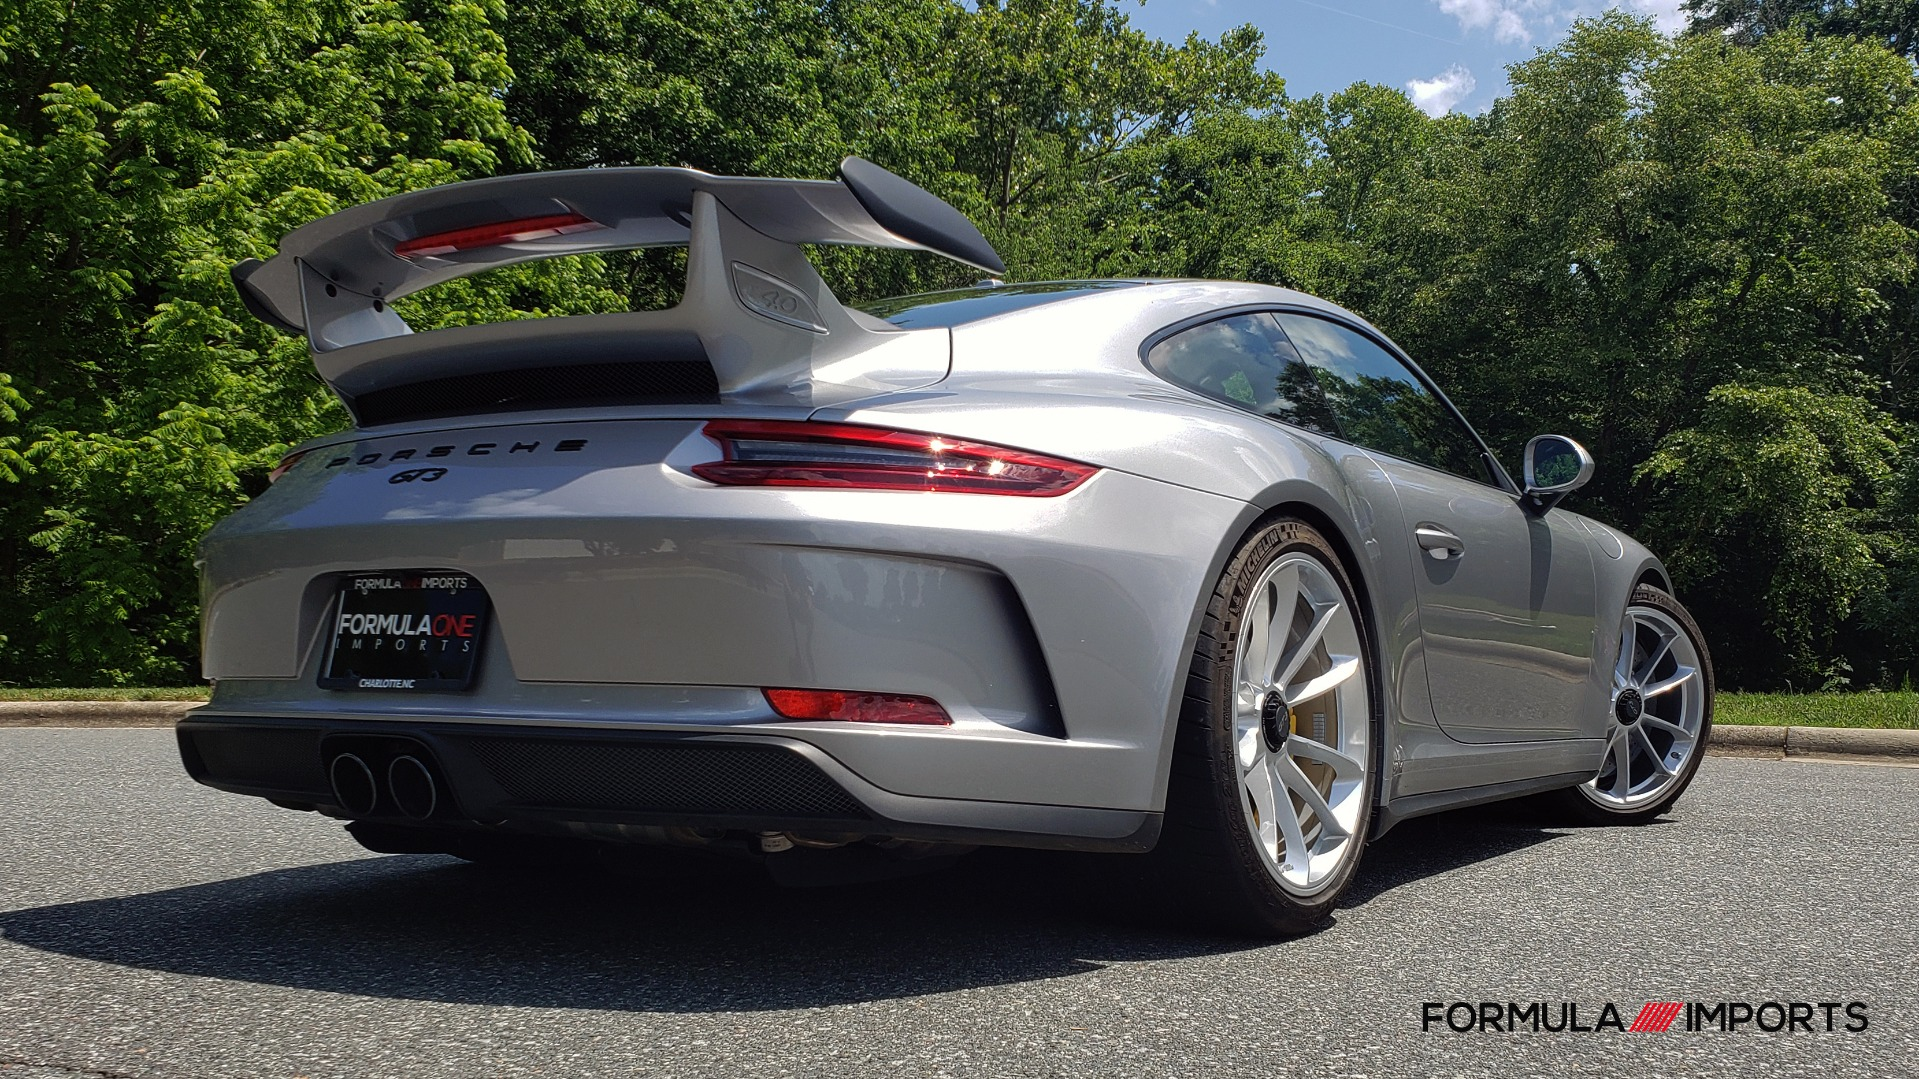 Used 2018 Porsche 911 GT3 4.0L 500HP / 6-SPD MNL / NAV / REARVIEW / PCCB for sale Sold at Formula Imports in Charlotte NC 28227 7